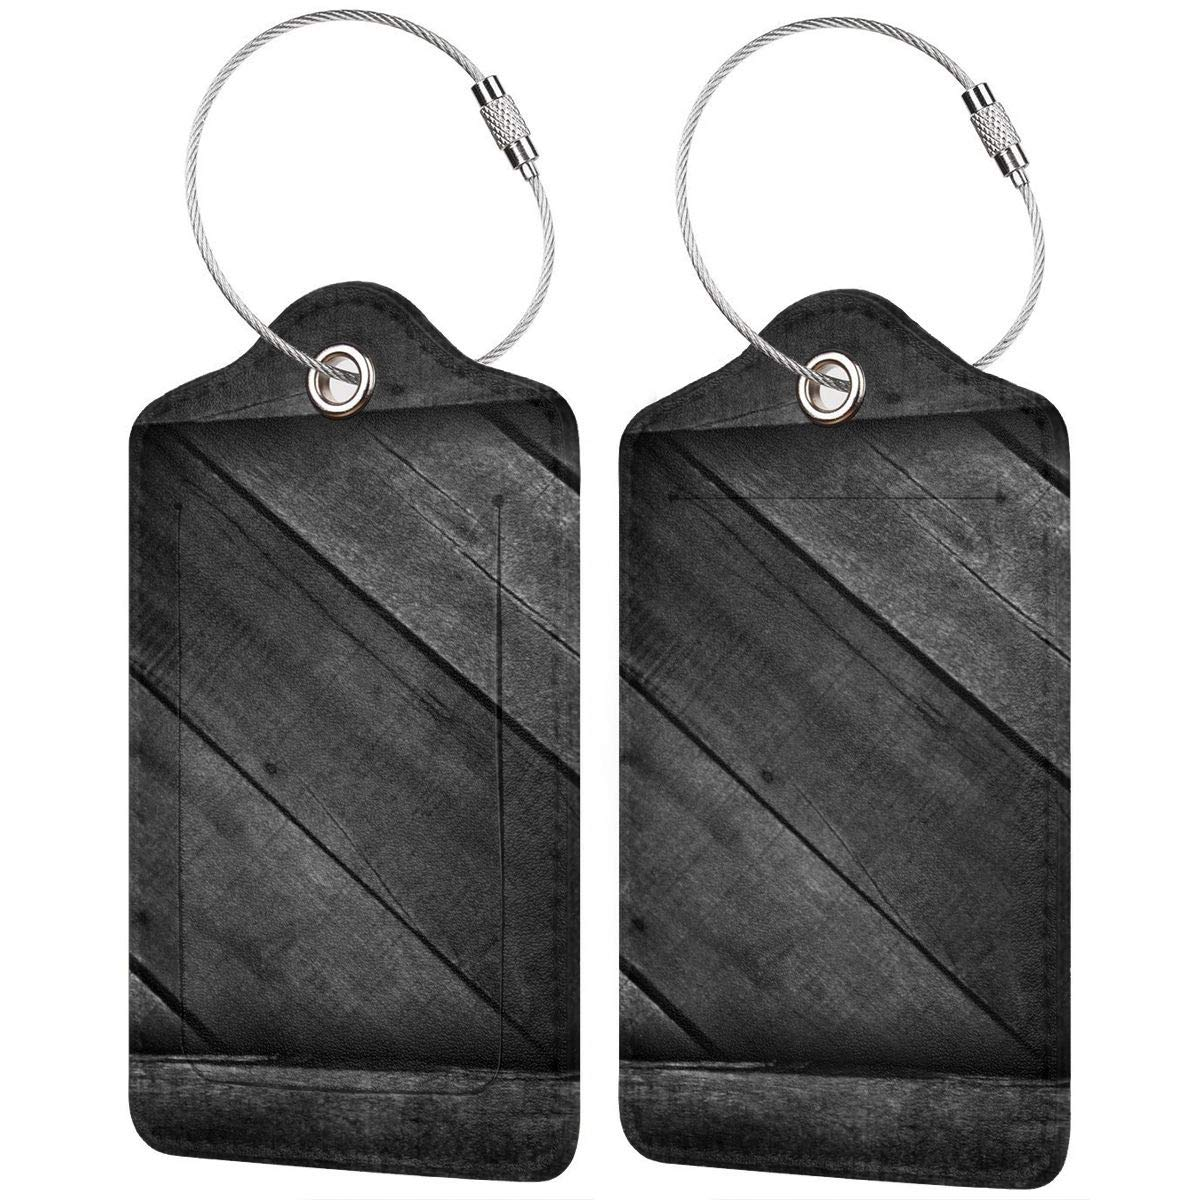 11 Luggage Tag Label Travel Bag Label With Privacy Cover Luggage Tag Leather Personalized Suitcase Tag Travel Accessories Wood Texture